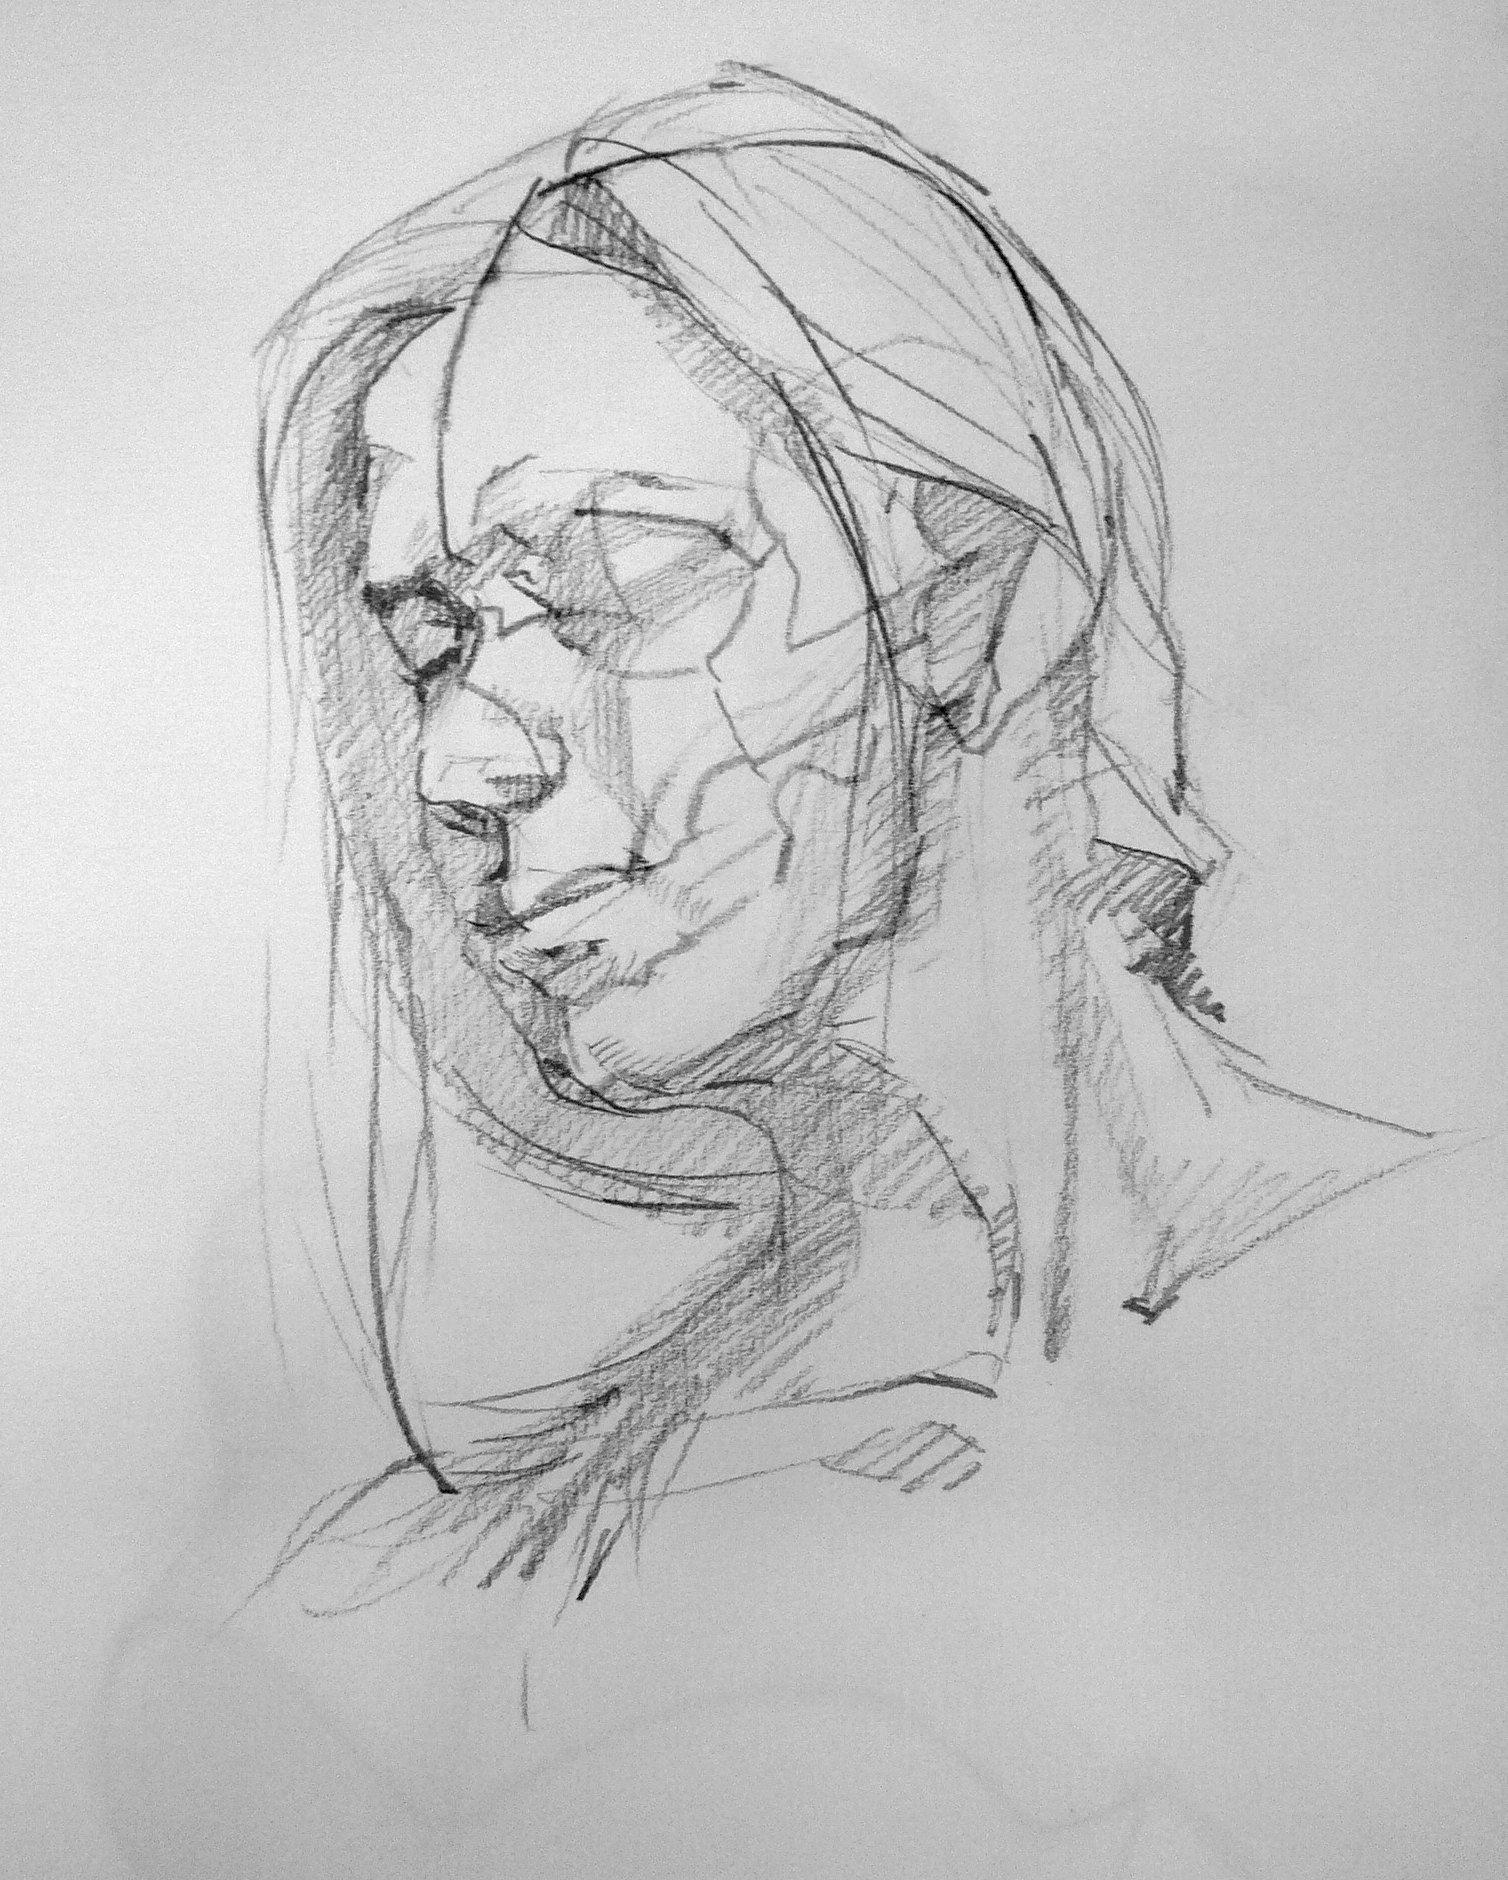 life drawing, pencil ,female model,Hench Chang 2012 | Life ...